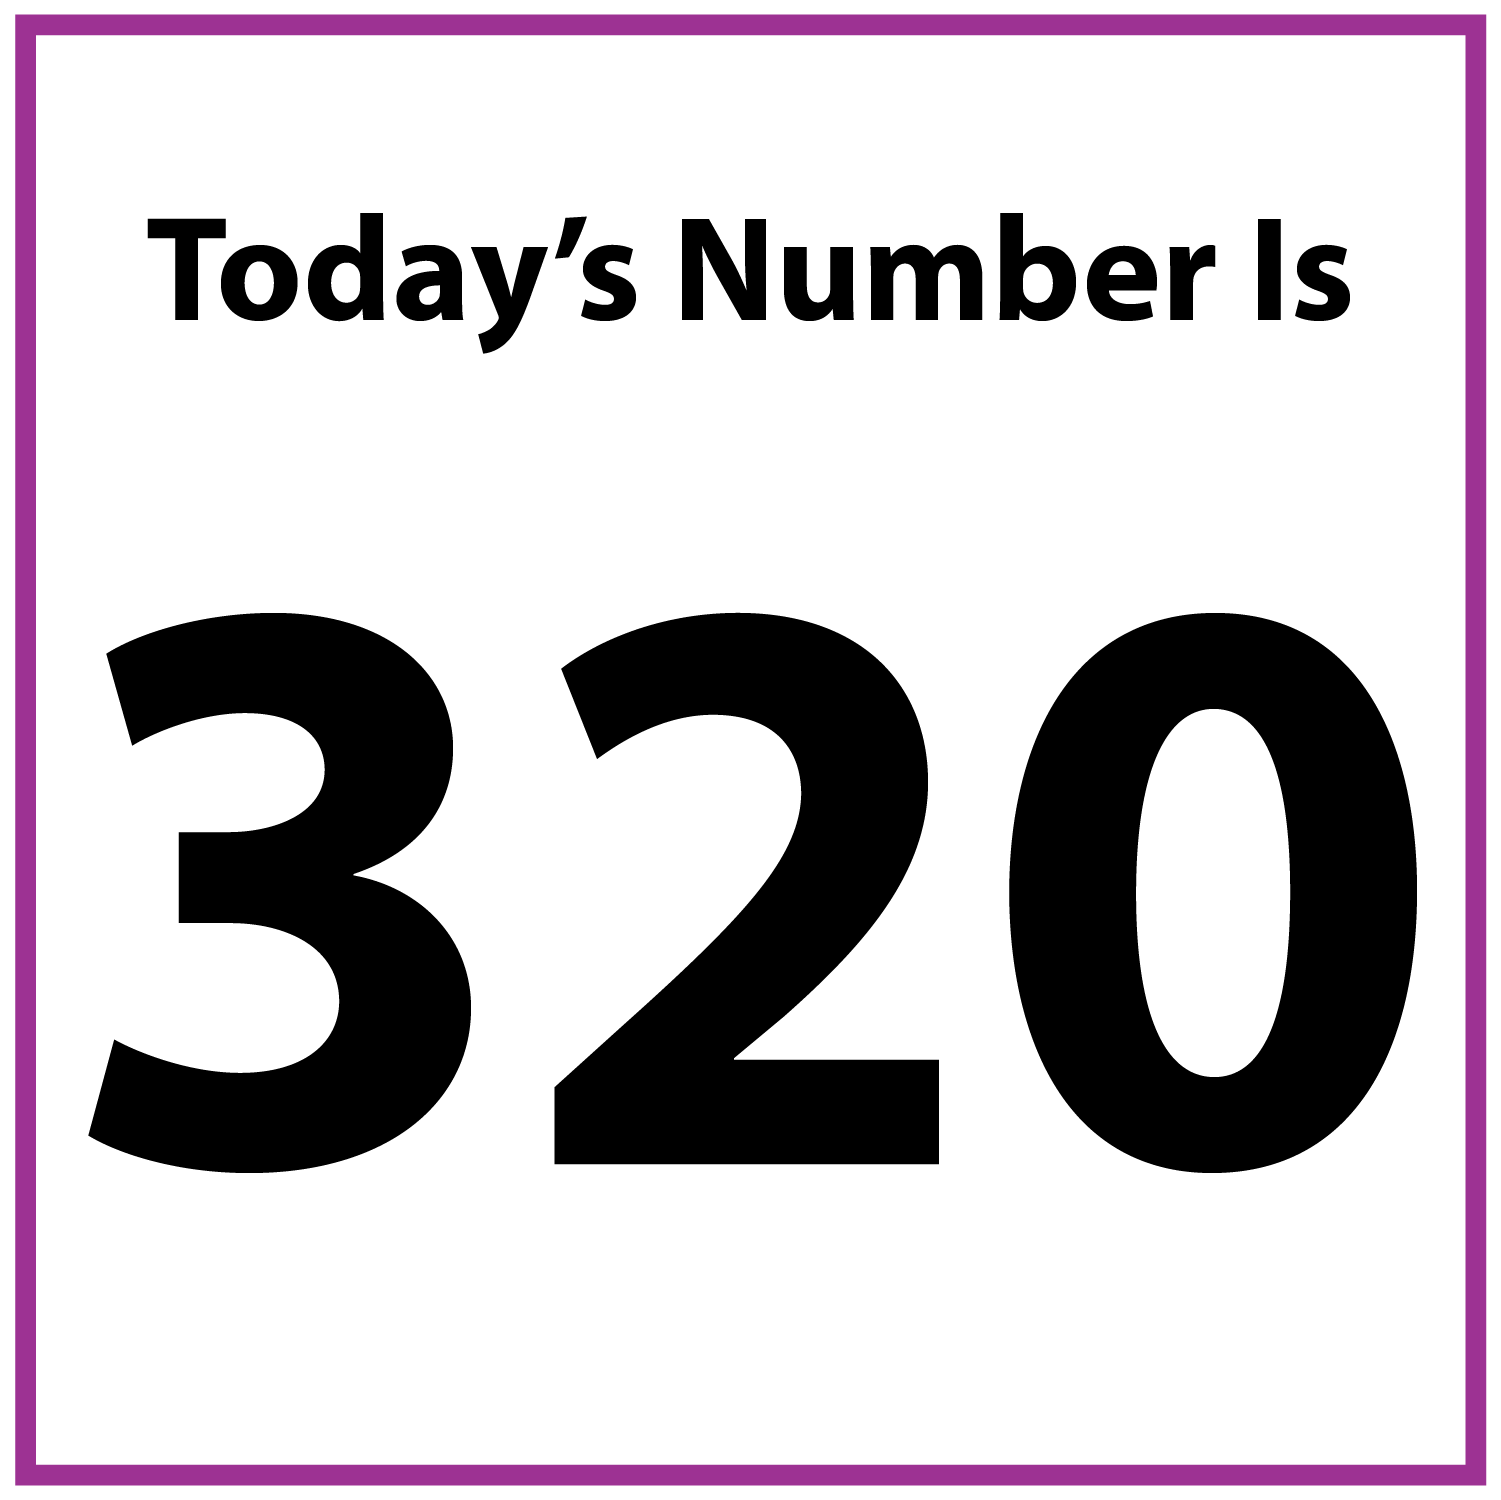 Today's number is 320.